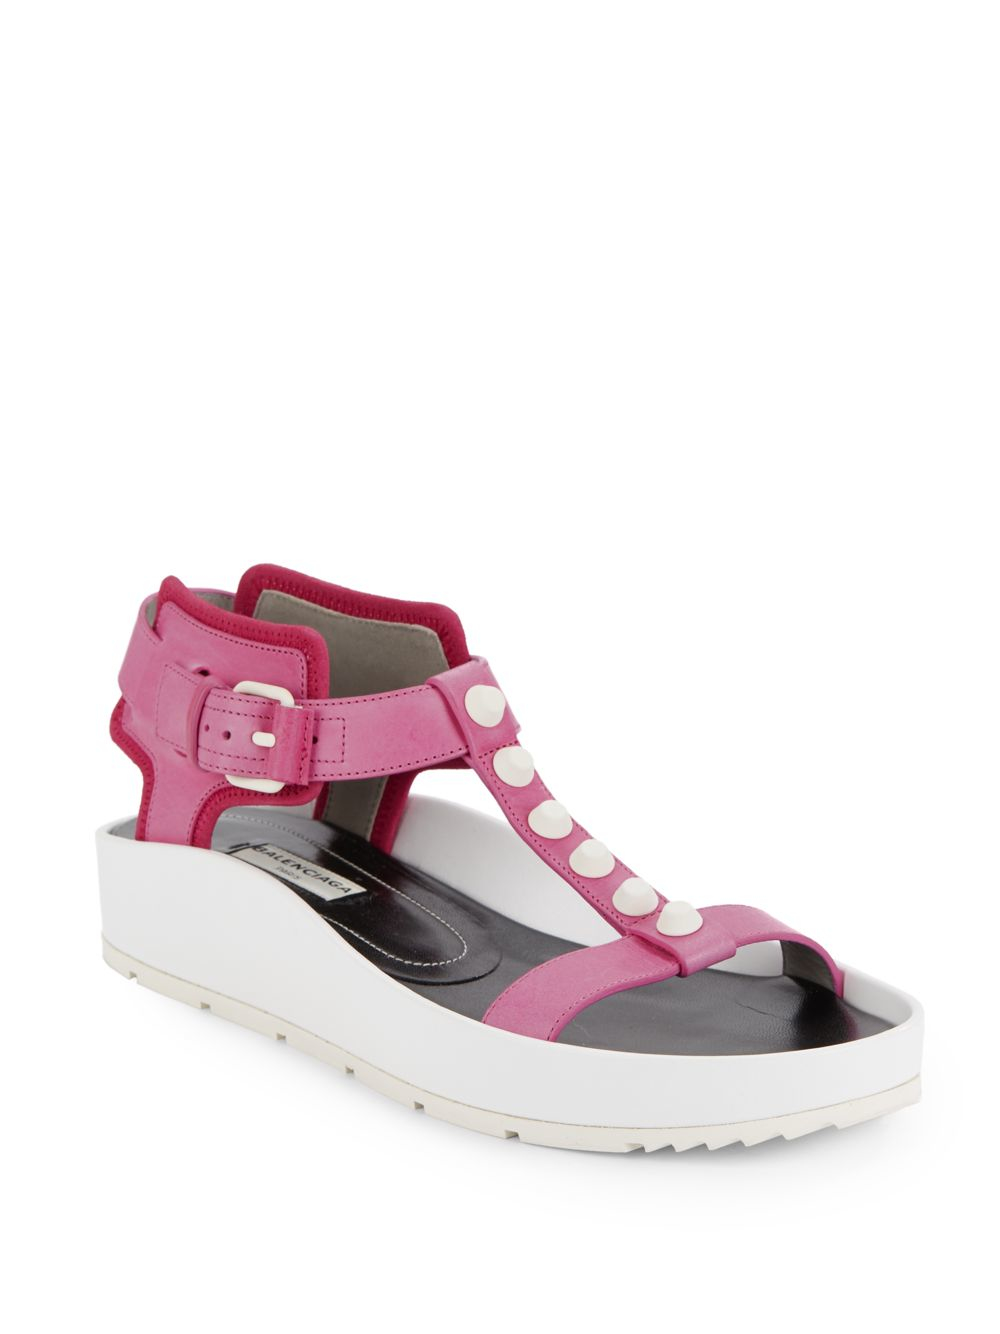 Balenciaga Studded Leather Platform Sandals In Pink Lyst